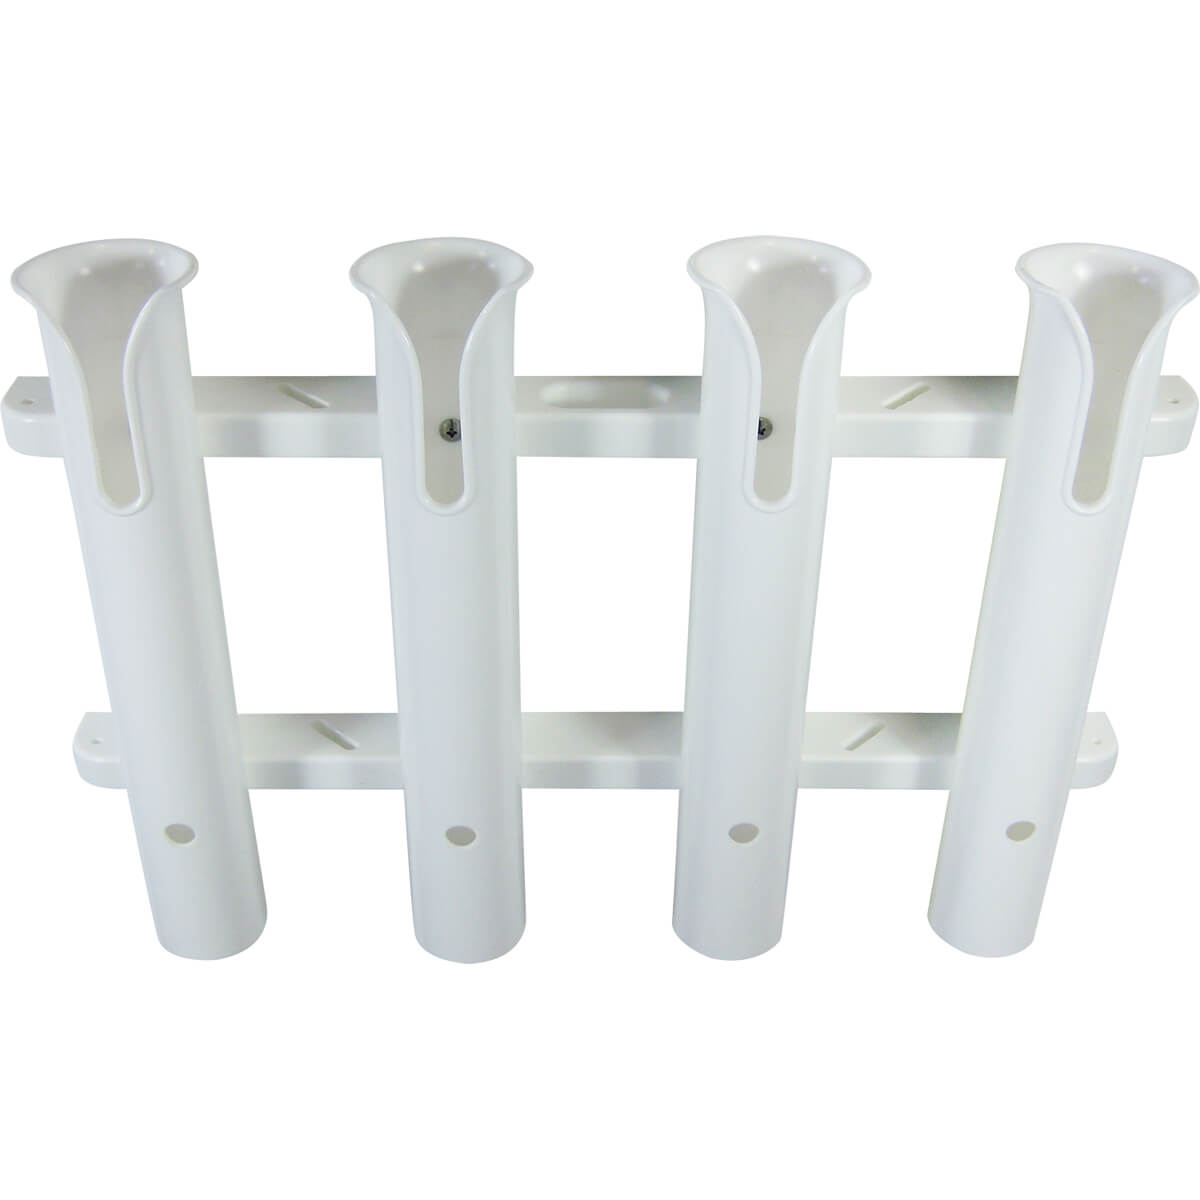 4 rod deluxe fishing rod holder rack white boat outfitters for Fish rod holders